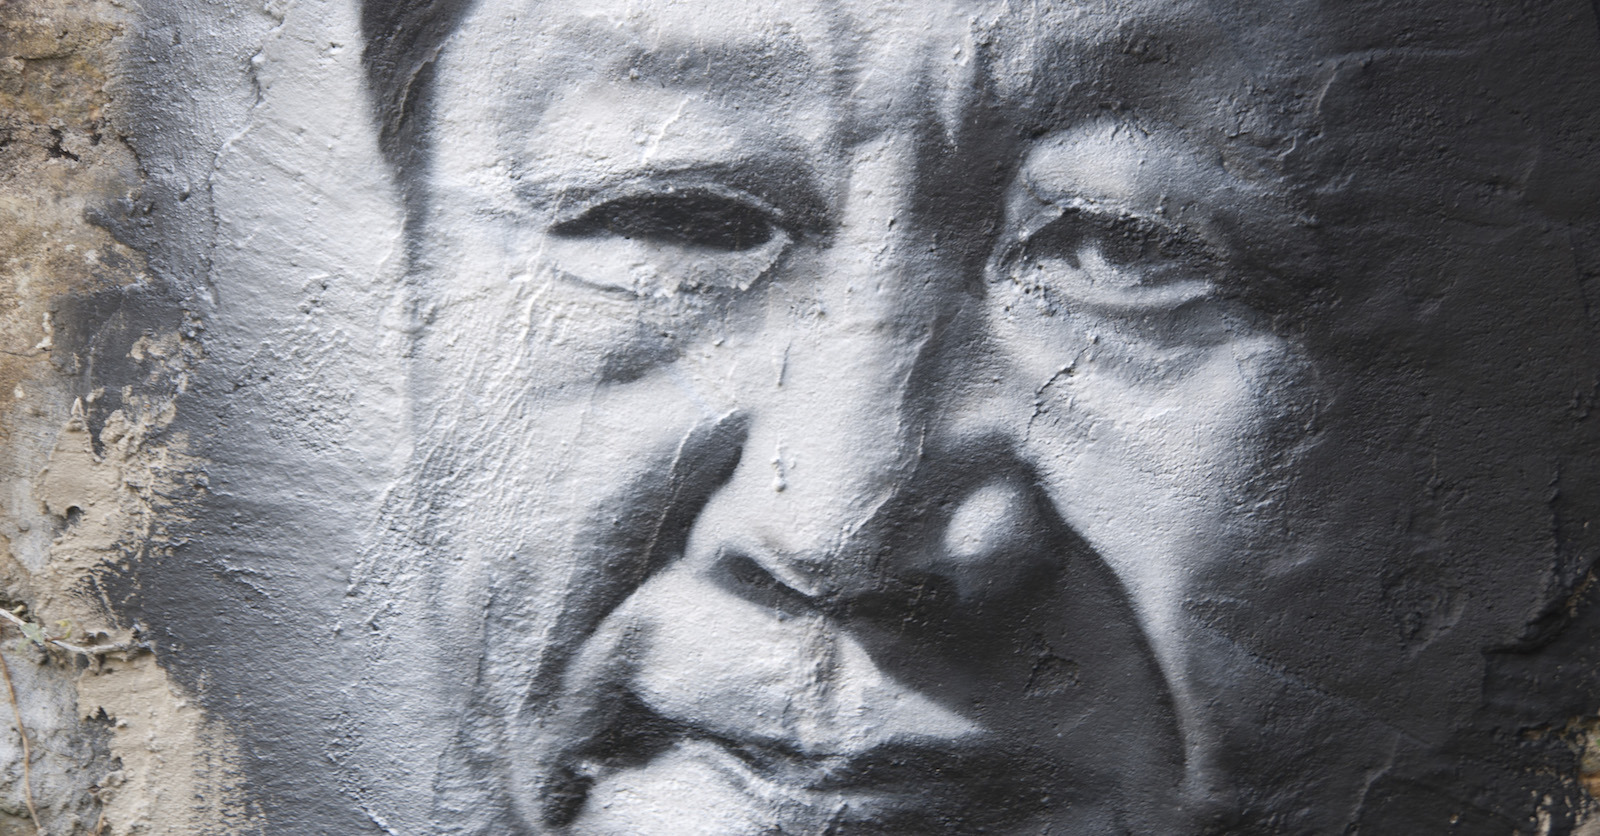 Portrait of Chinese President Xi Jinping (Photo: Thierry Erhman/ Flickr)